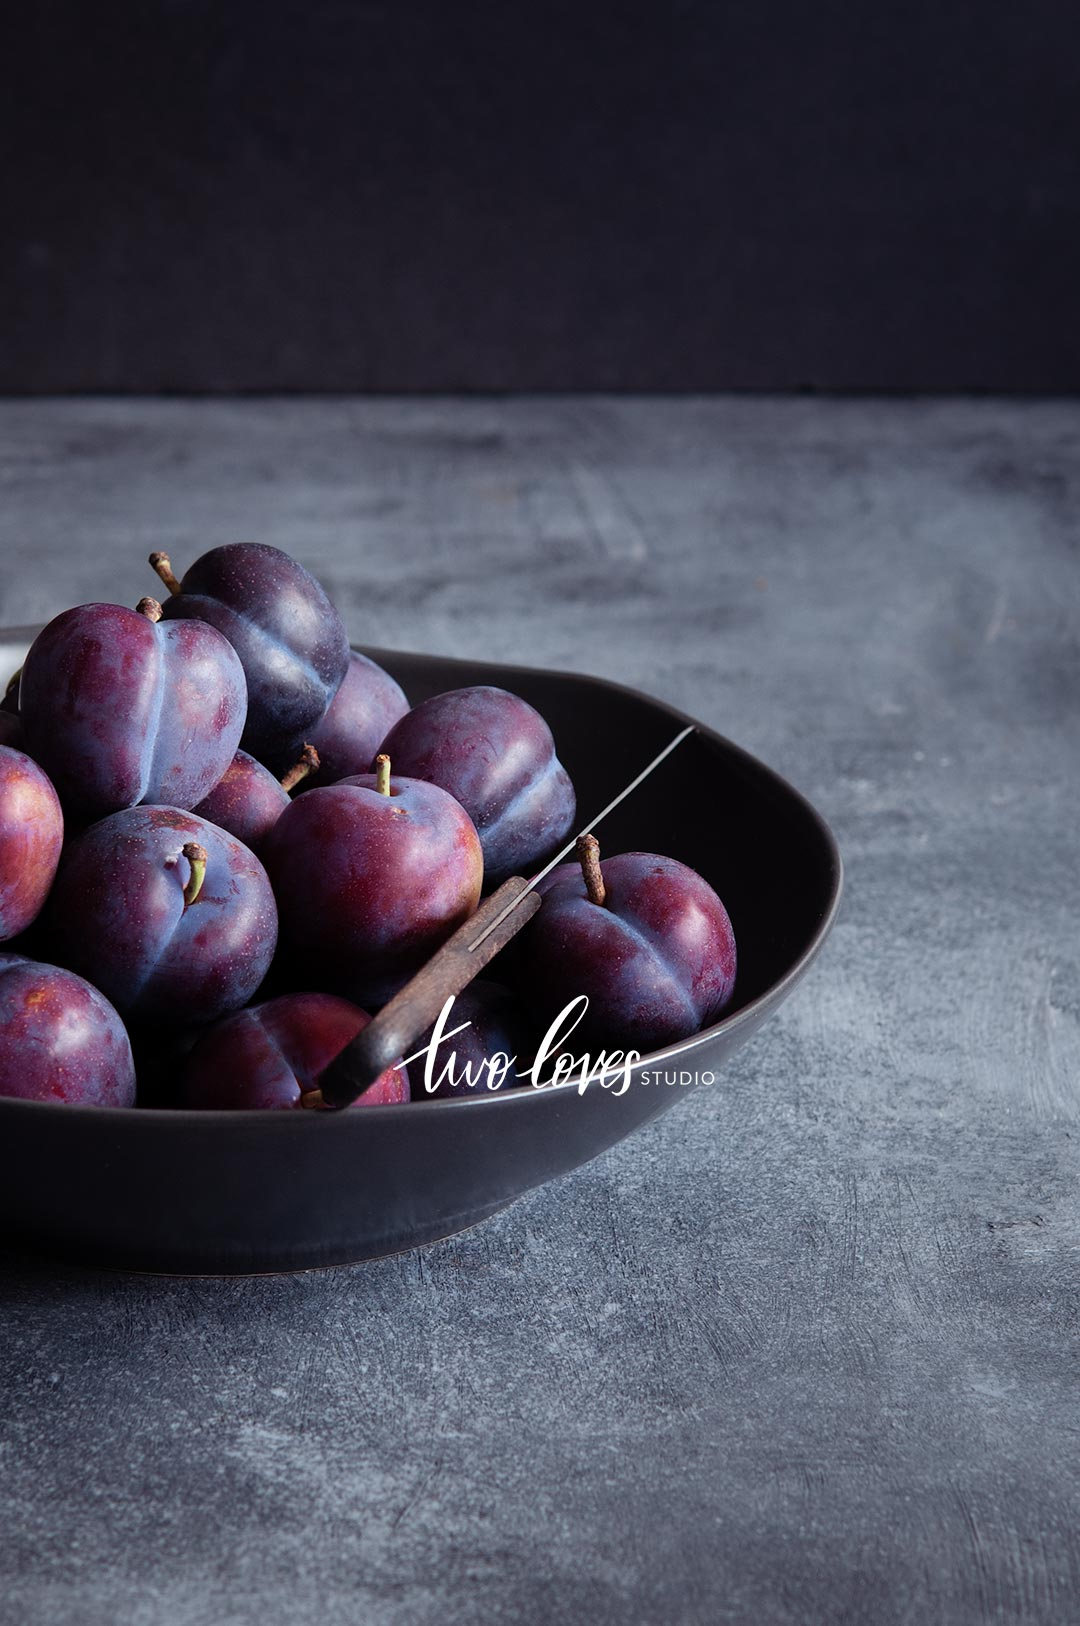 A bowl of plums in a dark lighting setup.